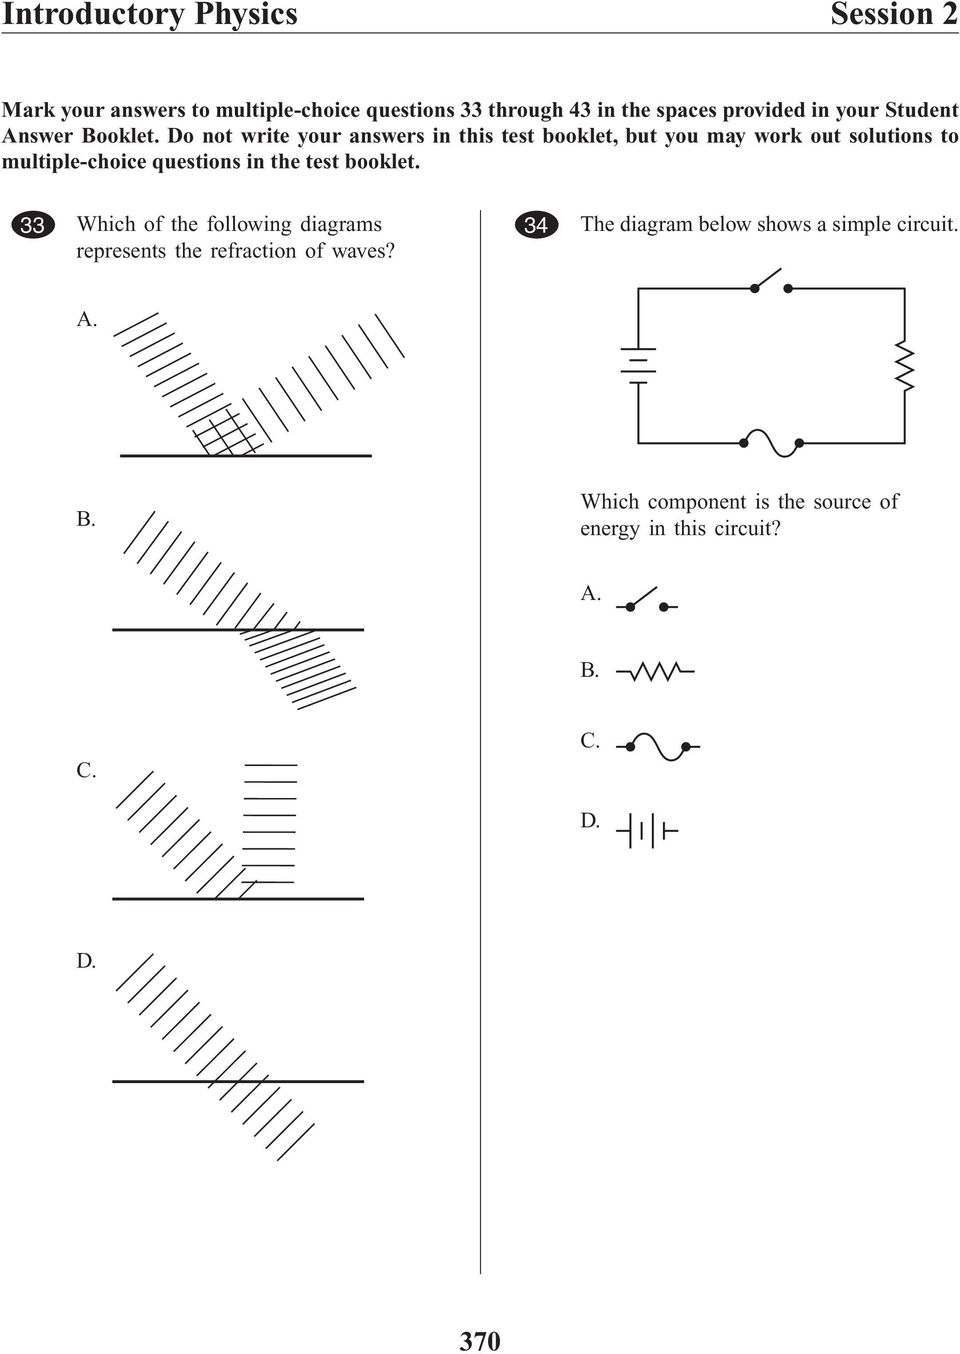 Xx Introductory Physics High School Pdf Circuit Diagram Test Questions Id781 Belrob101 Wave Diagramse B Common Eq 33 Which Of The Following Diagrams Represents